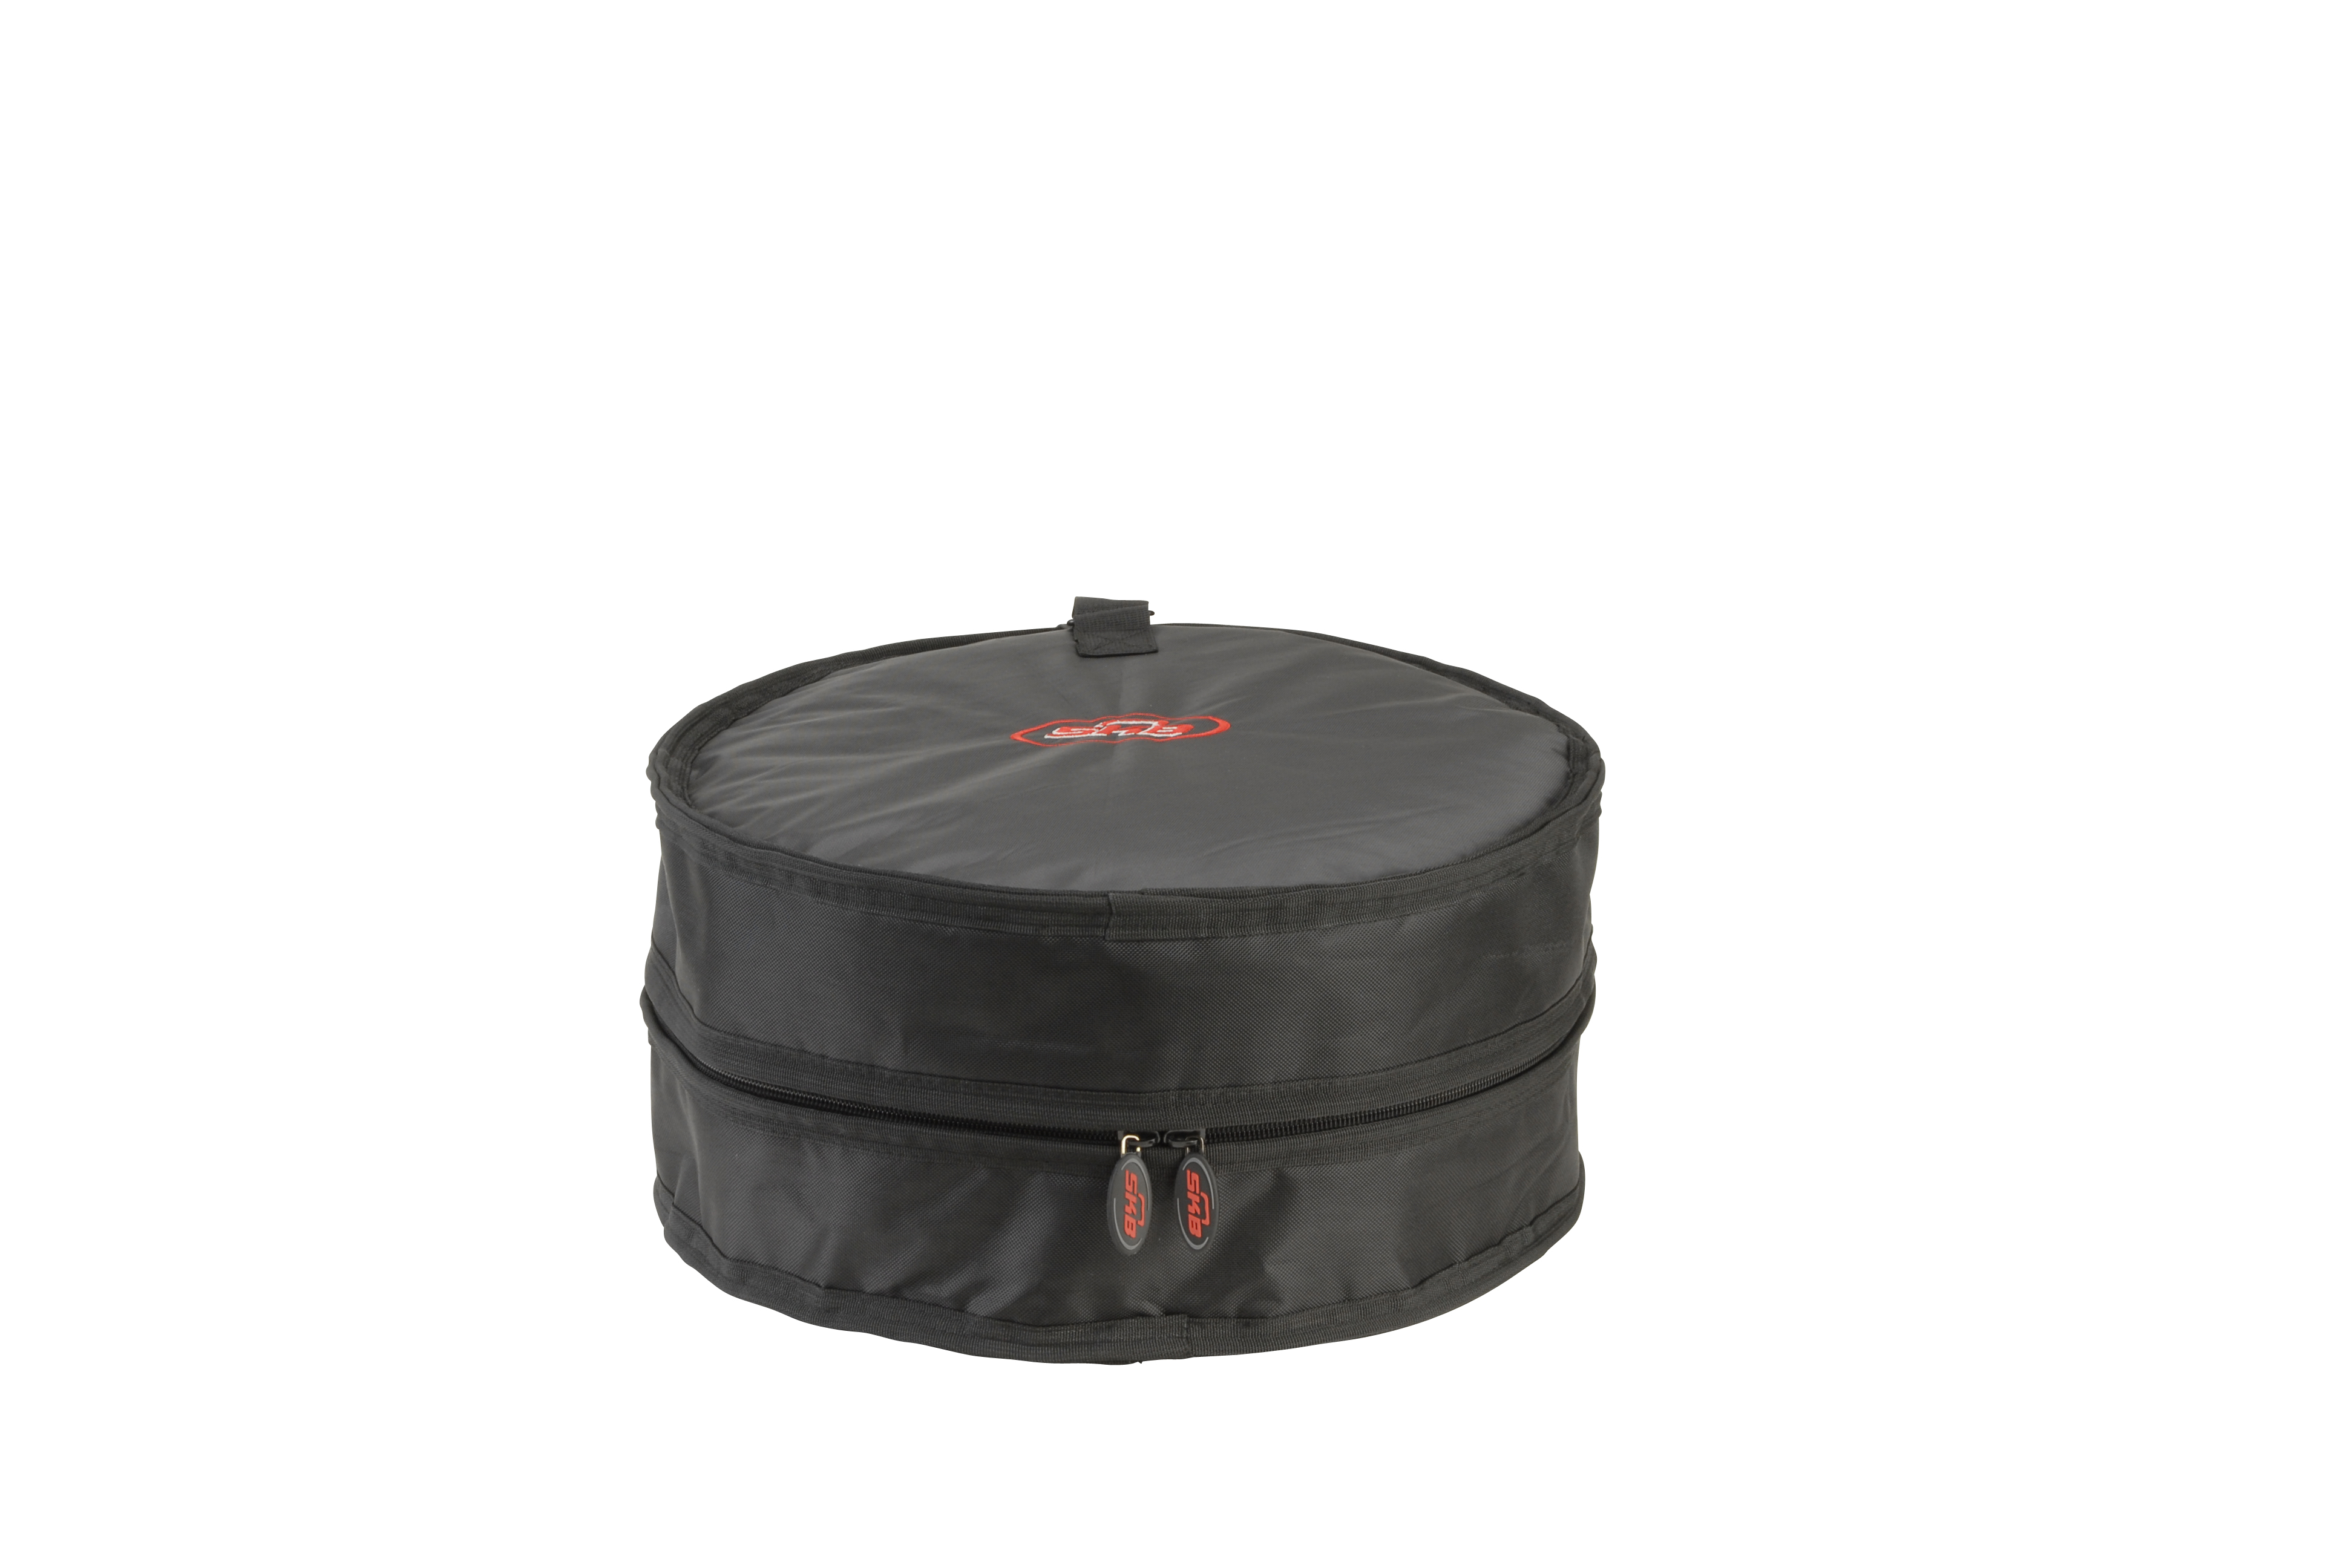 Melody House Musical Instruments Store - 1SKB DB5514 5 5 x 14 Snare Gig Bag